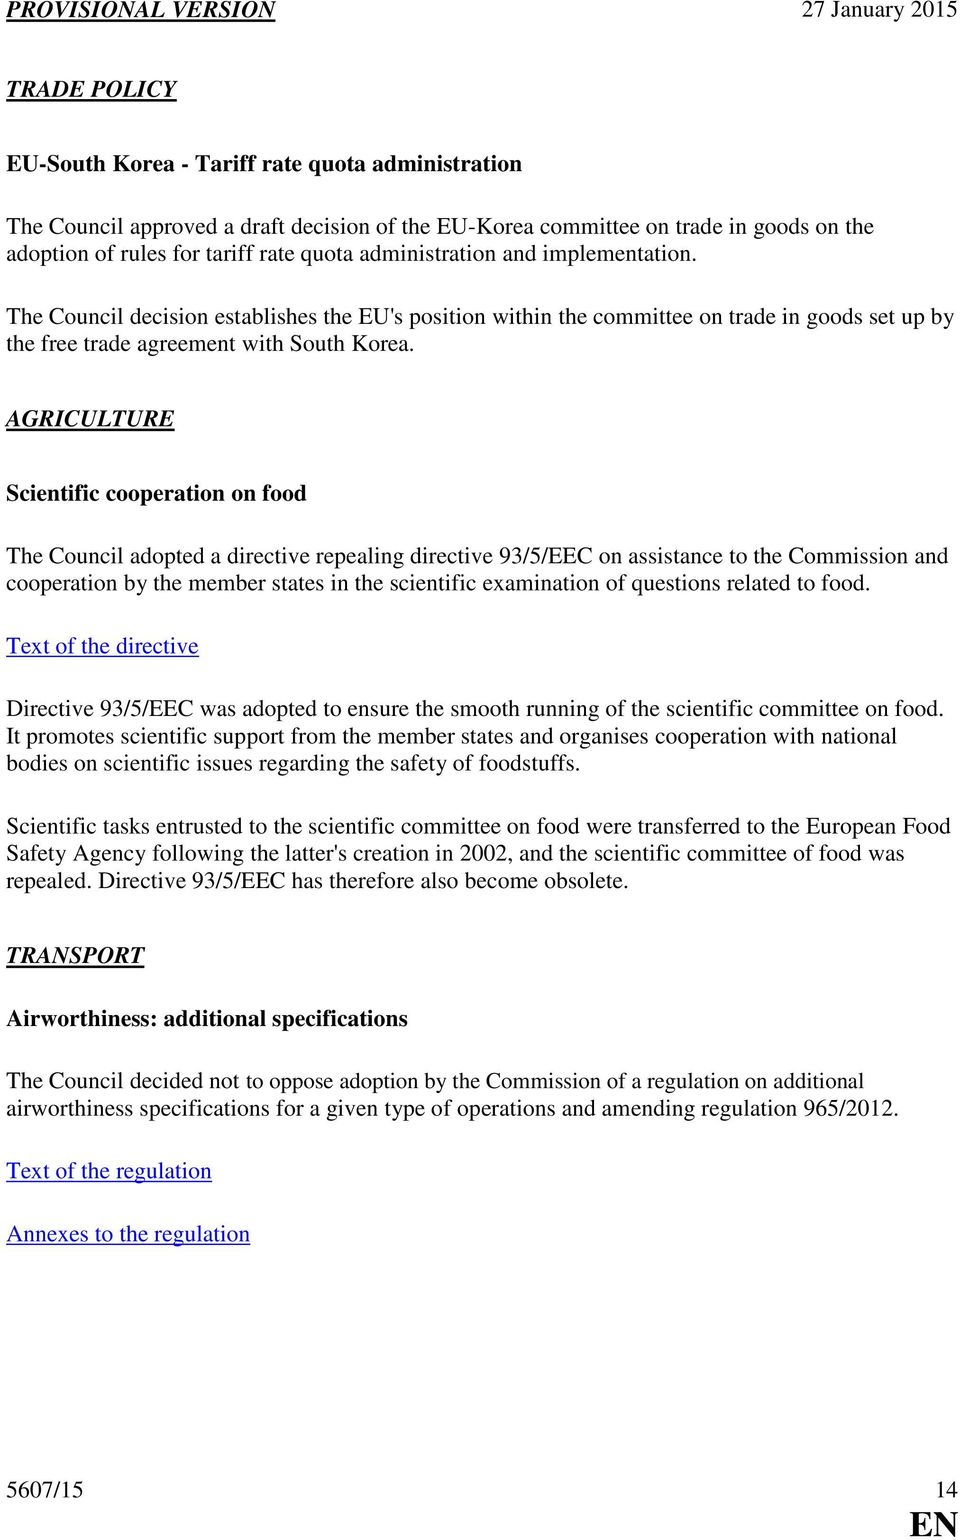 AGRICULTURE Scientific cooperation on food The Council adopted a directive repealing directive 93/5/EEC on assistance to the Commission and cooperation by the member states in the scientific